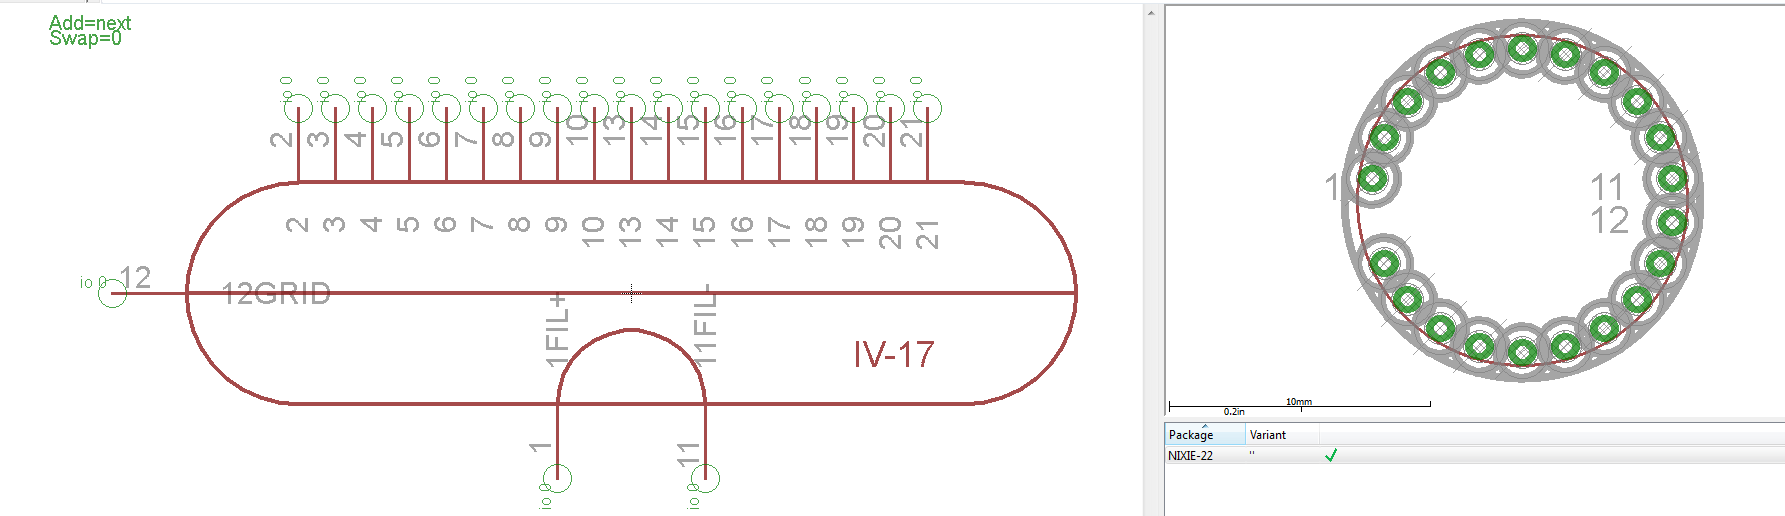 Ece477 Course Documents Circuit Diagram Of Numeric Ups The Preliminary Pcb Is Still On Wiring Stage One Thing Certain It Will Be A Very Complicated